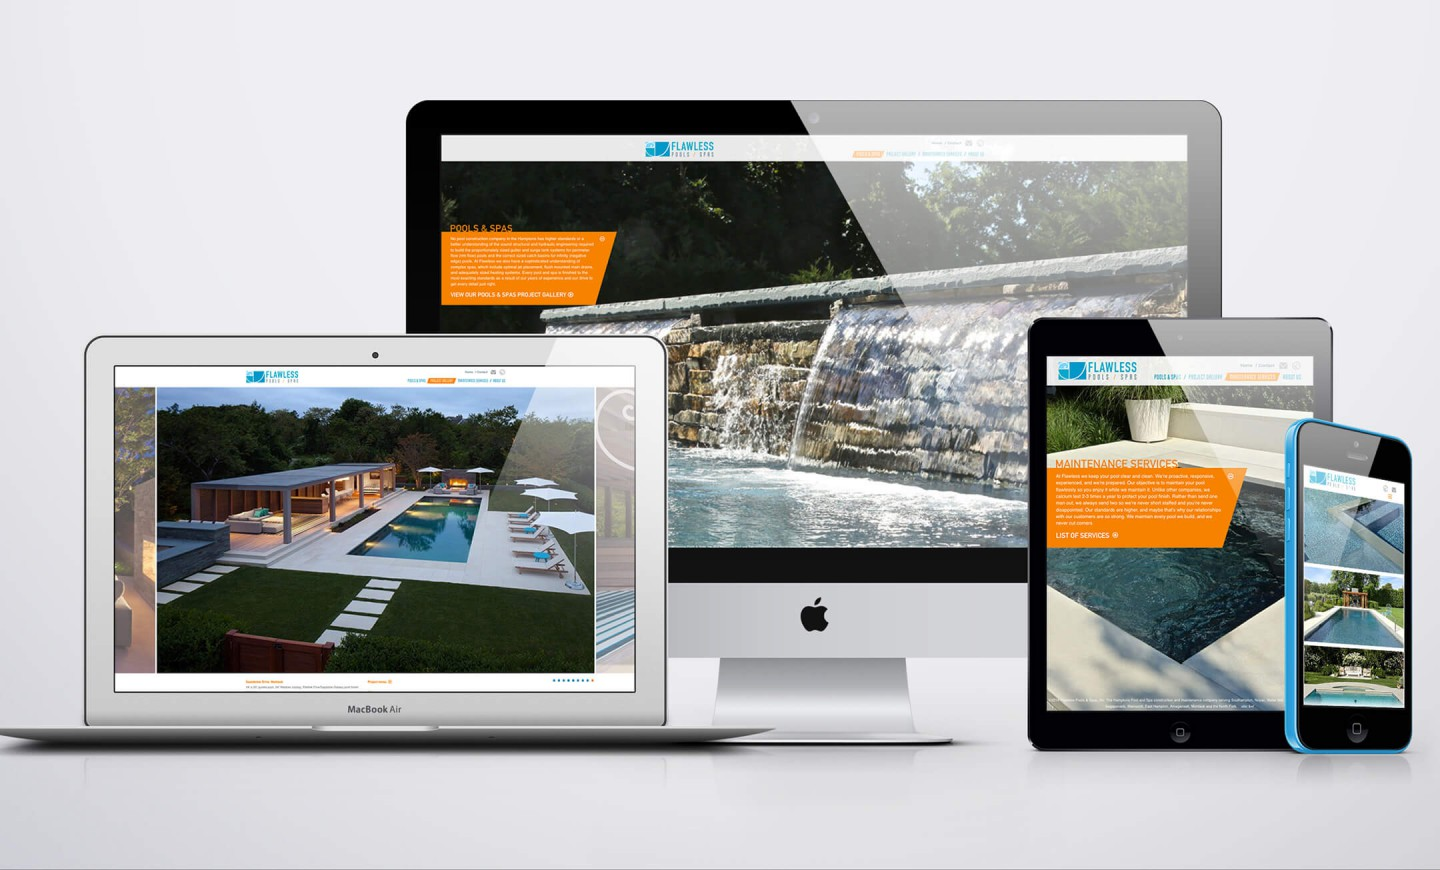 Flawless Pools website